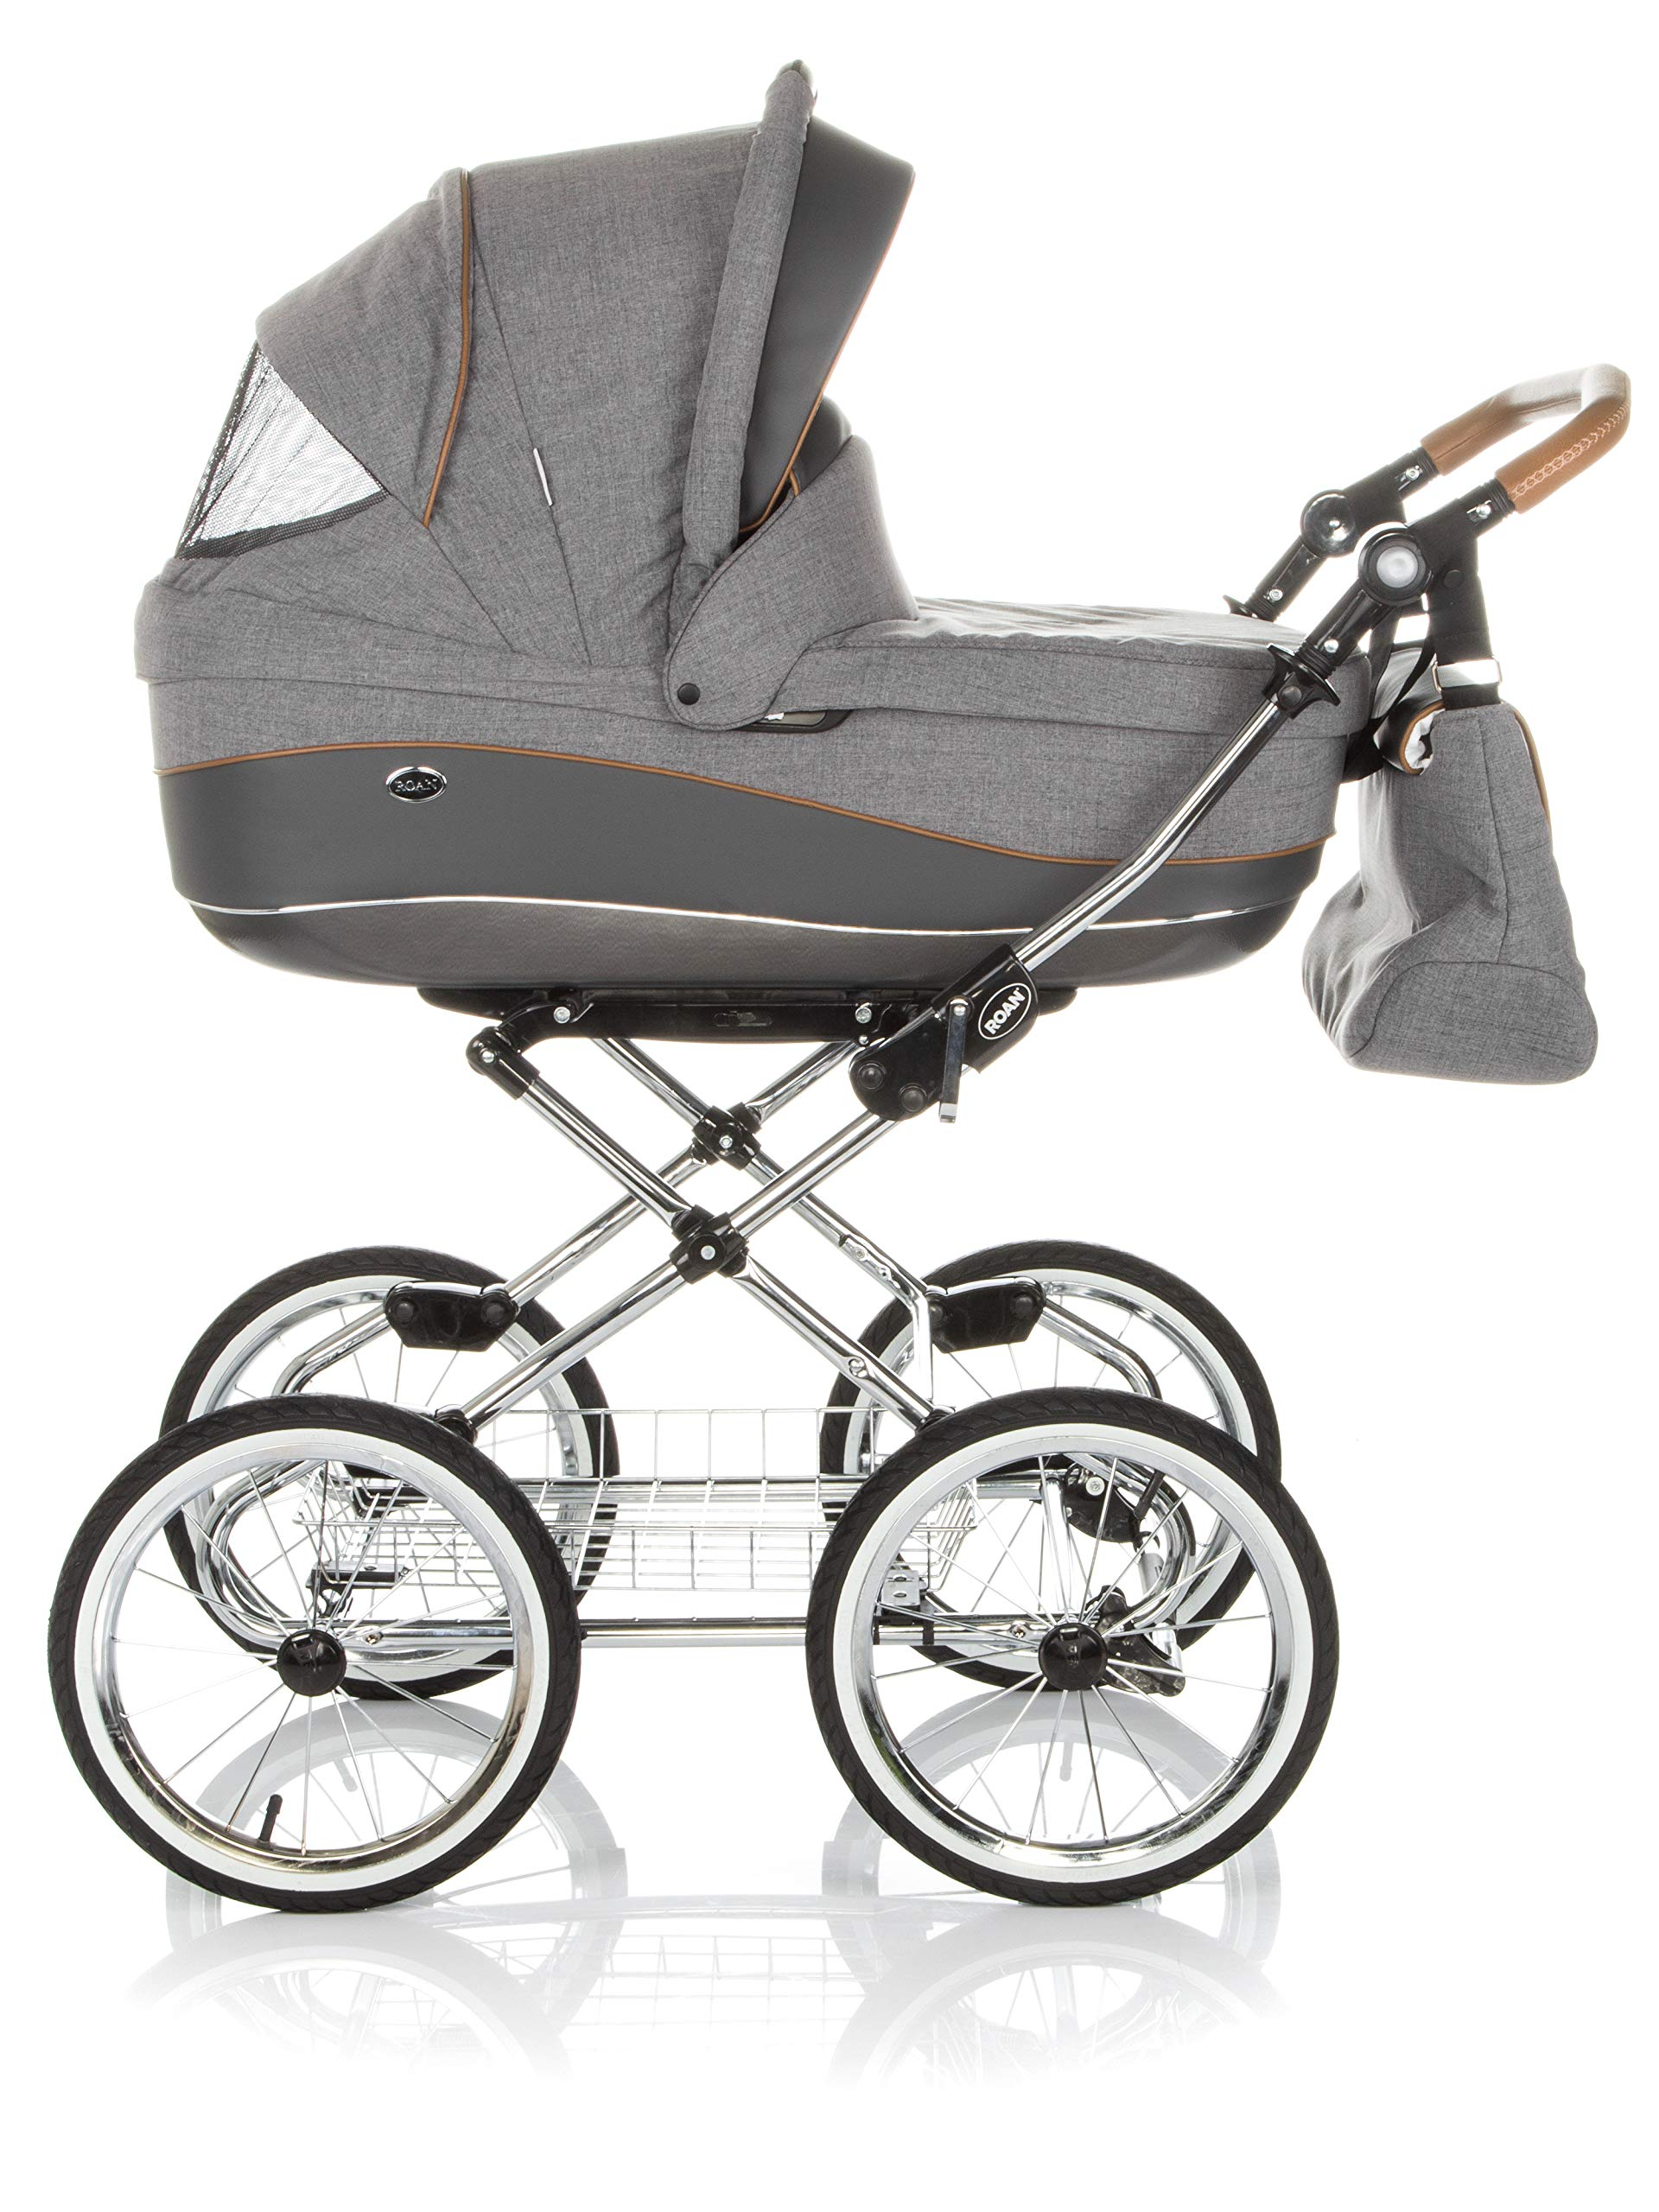 Children's Pram Buggy Stroller Combination Car seat Classic Retro Baby Carrier ROAN Emma (E-56 Grey-Grey Leather, 3IN1) JUNAMA Frame / wheels Sturdy and lightweight aluminum frame construction with folding function 1-click system for easy assembly and disassembly Practical carrying handle for easy storage of the folded frame Wheels for inflating (14 inch) removable wheels Brake system with central brake Height-adjustable push handle - 10-fold matching shopping basket Dimensions folded with wheels: 86 x 60 x 40 cm folded without wheels: 76 x 60 x 26 cm Total height of the stroller to hood top: 106 cm Height of the tub from the ground: 60 cm Wheelbase External dimensions: 80x 58 cm Variable height of the push handle: 77- 119 cm Weight of the frame incl. Wheels and carrying bag 15 kg Carrycot Length and width of carrycot outside: 88 x 42 cm Carrying bag length and width inside: 76 x 35 cm Sturdy plastic tub with comfortable mattress and side protection Ventilation slots on the plastic tub The baby car seat 0-13 kg Maxi-Cosi in black incl. Adapter 3